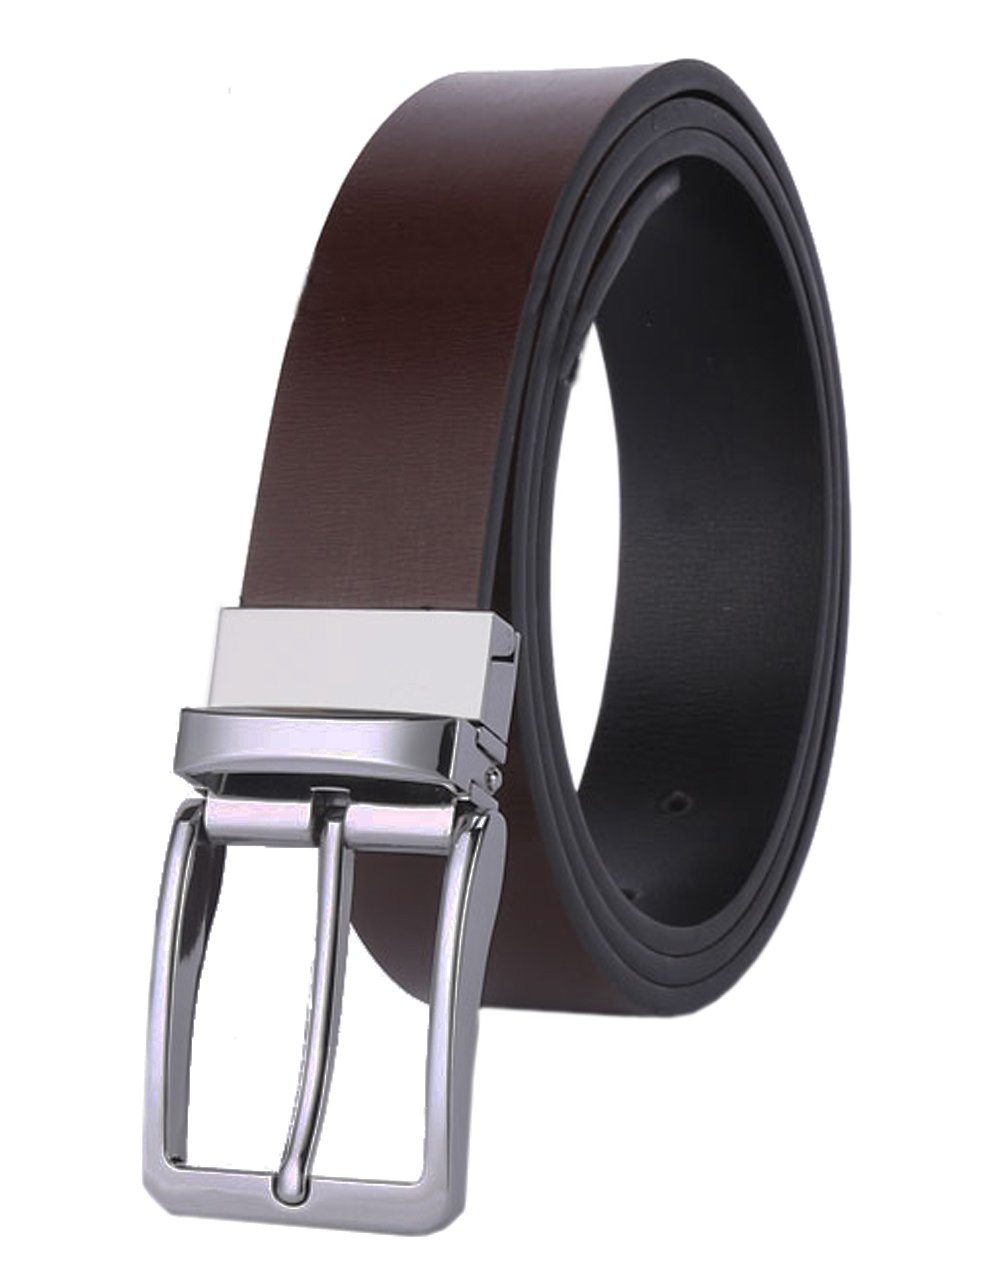 Men's Reversible Belt - ITIEZY Genuine Leather Belt Rotated Buckle Classic Fashion Designs Belt